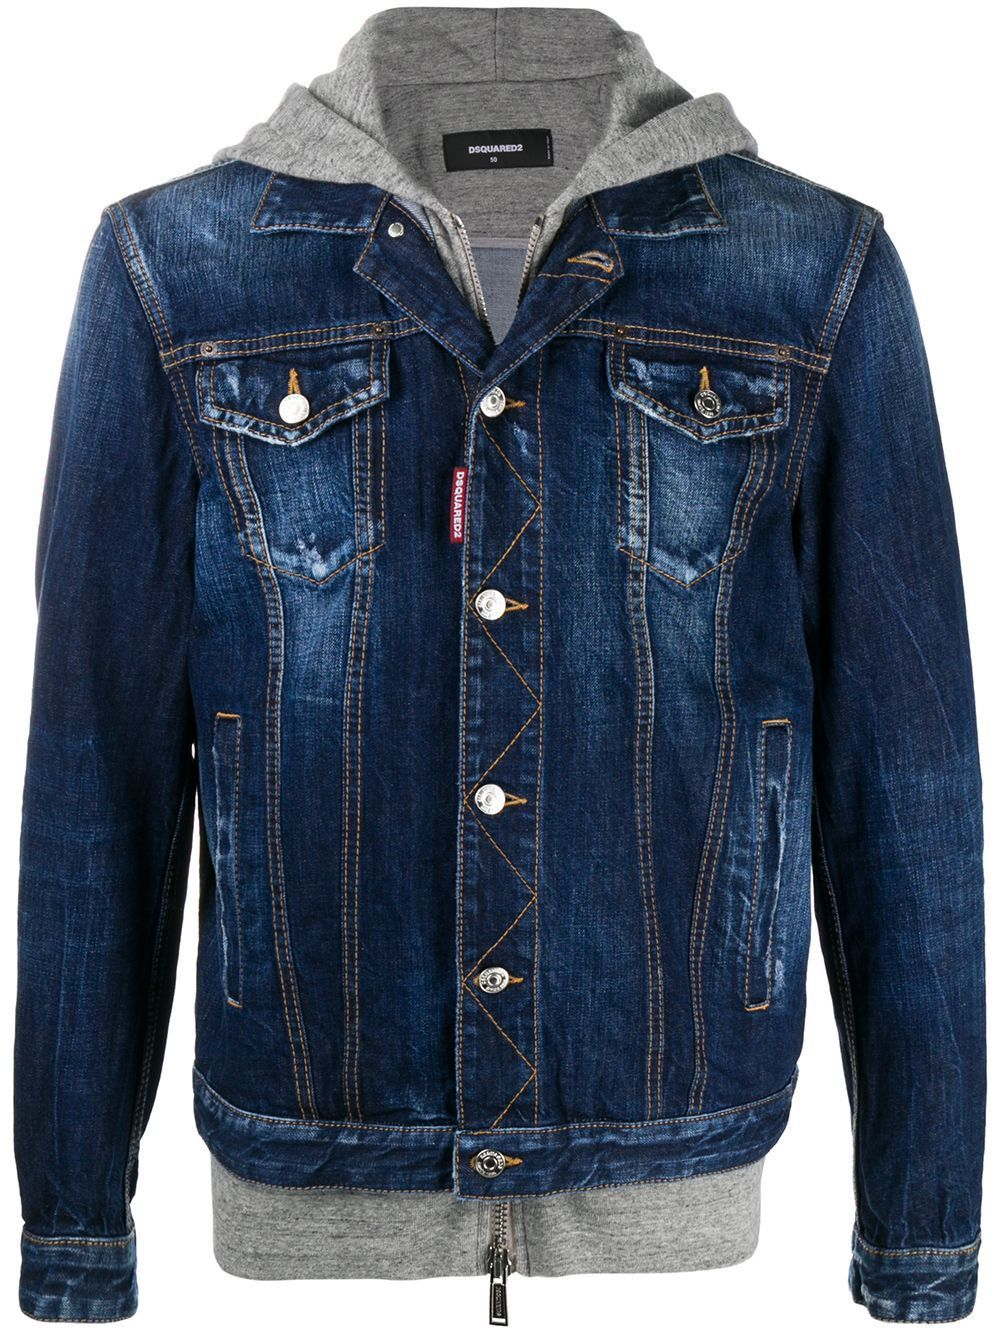 DSQUARED2 ICON Logo Denim Jacket - Maison De Fashion